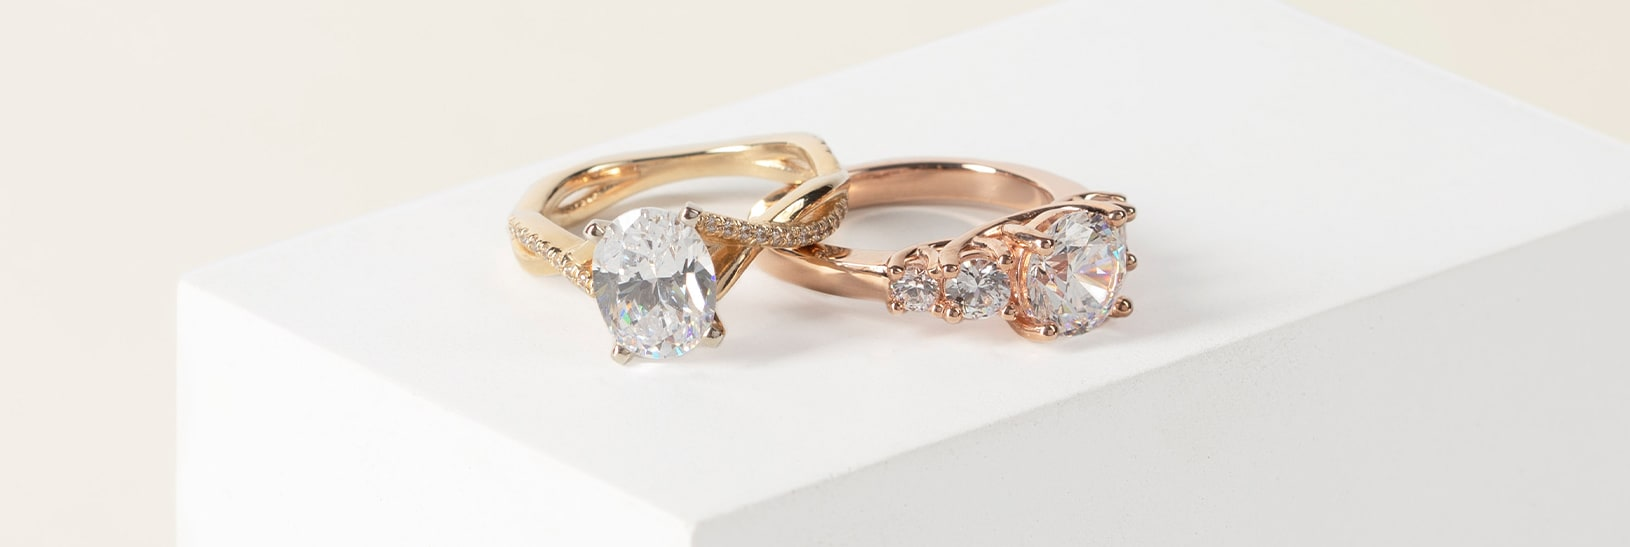 An oval and round cut simulated diamond in yellow and rose gold settings